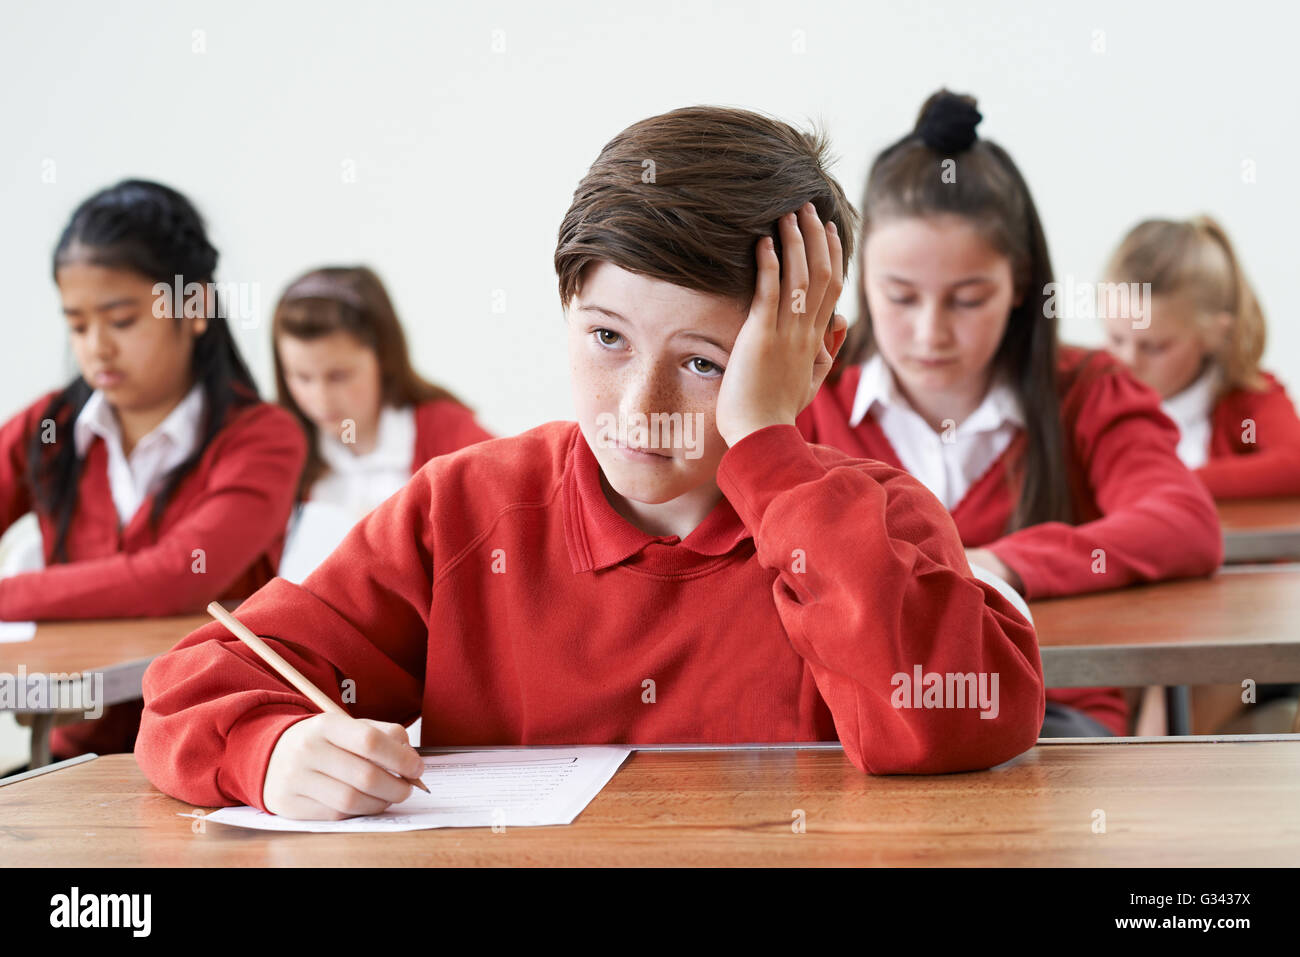 Male Pupil Finding School Exam Difficult - Stock Image